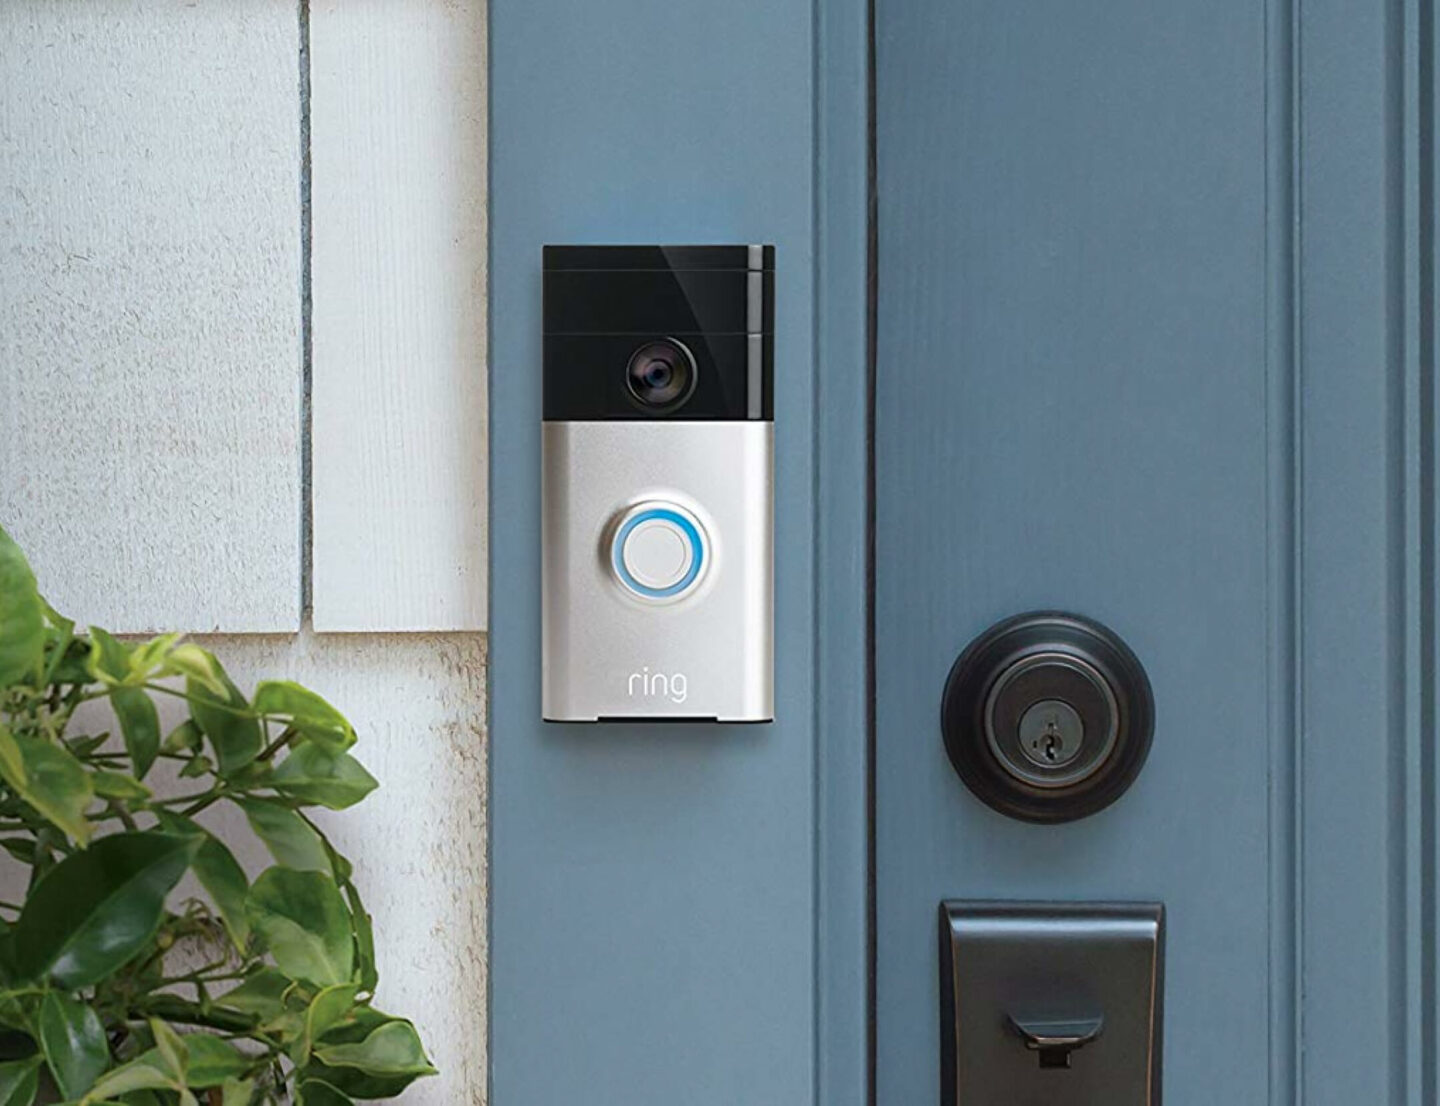 Ring doorbell on blue door